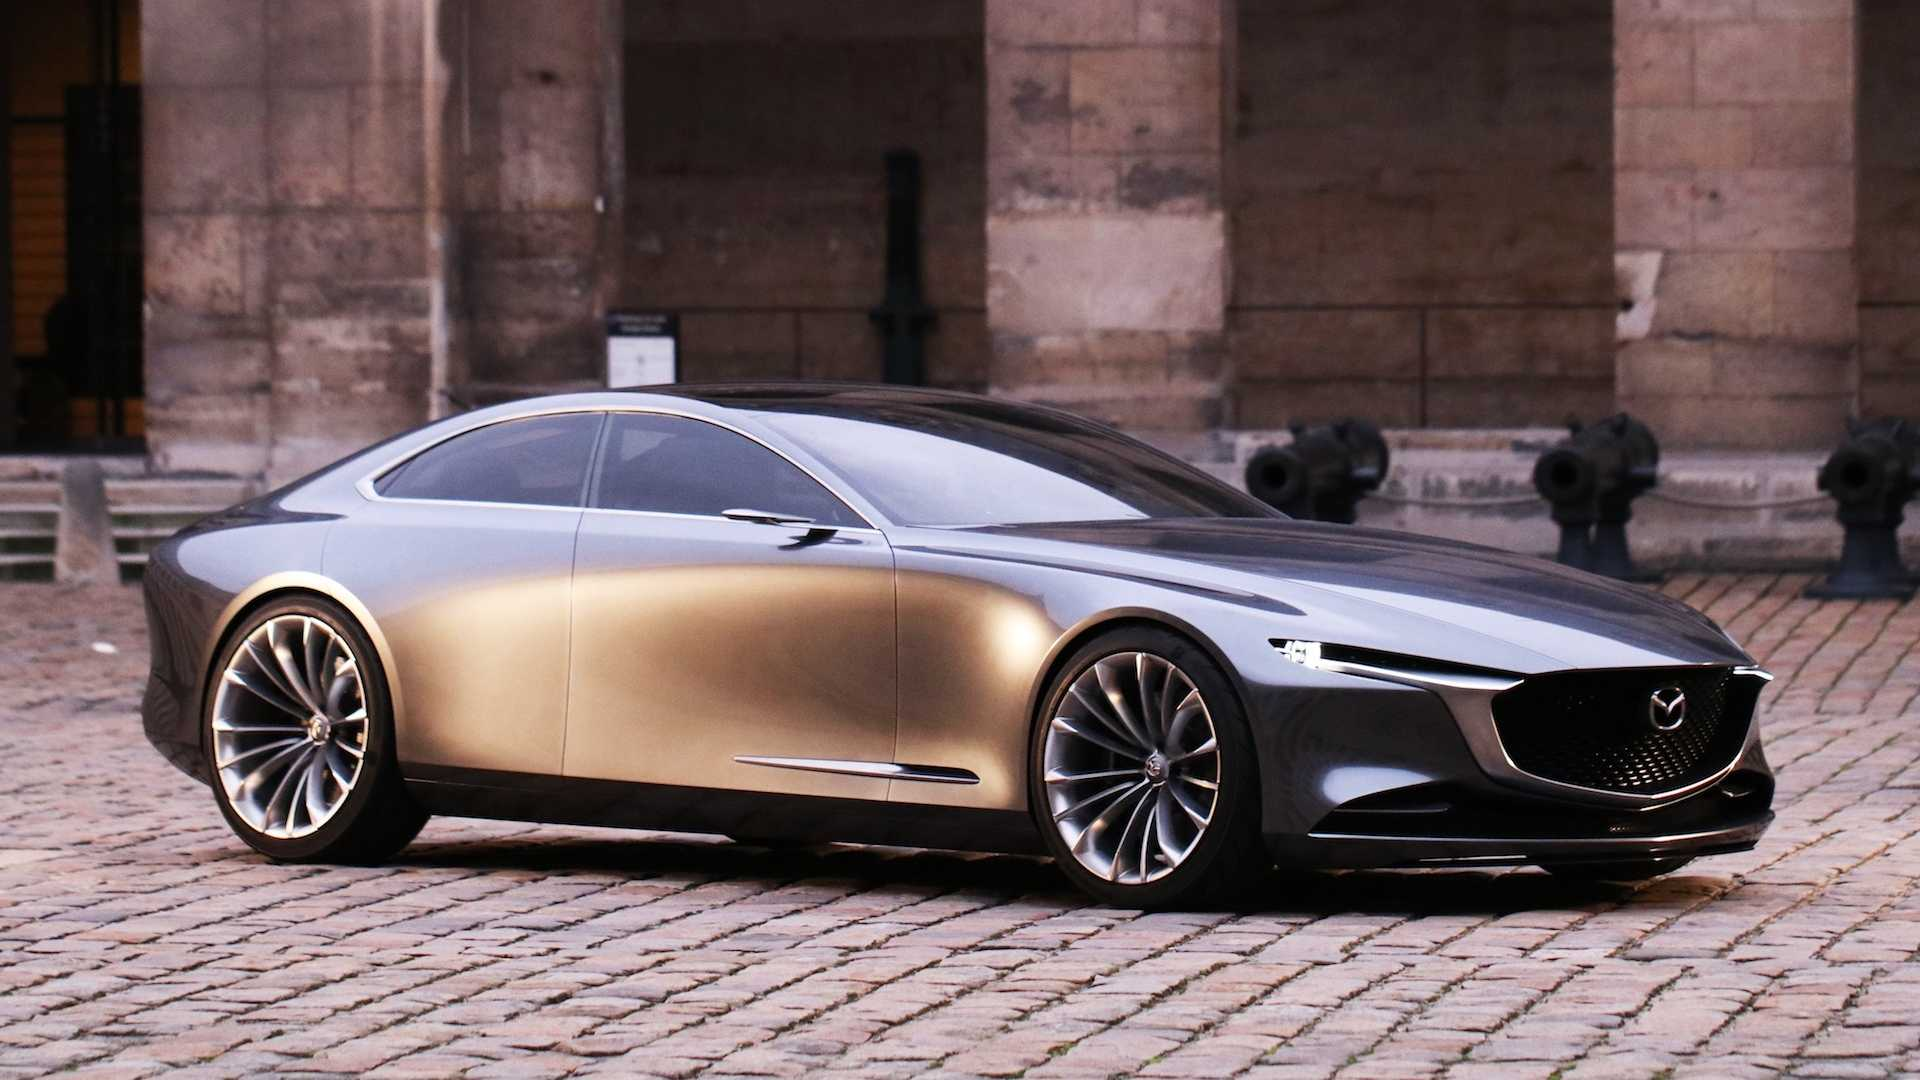 51 All New Mazda 6 Vision Coupe 2020 History